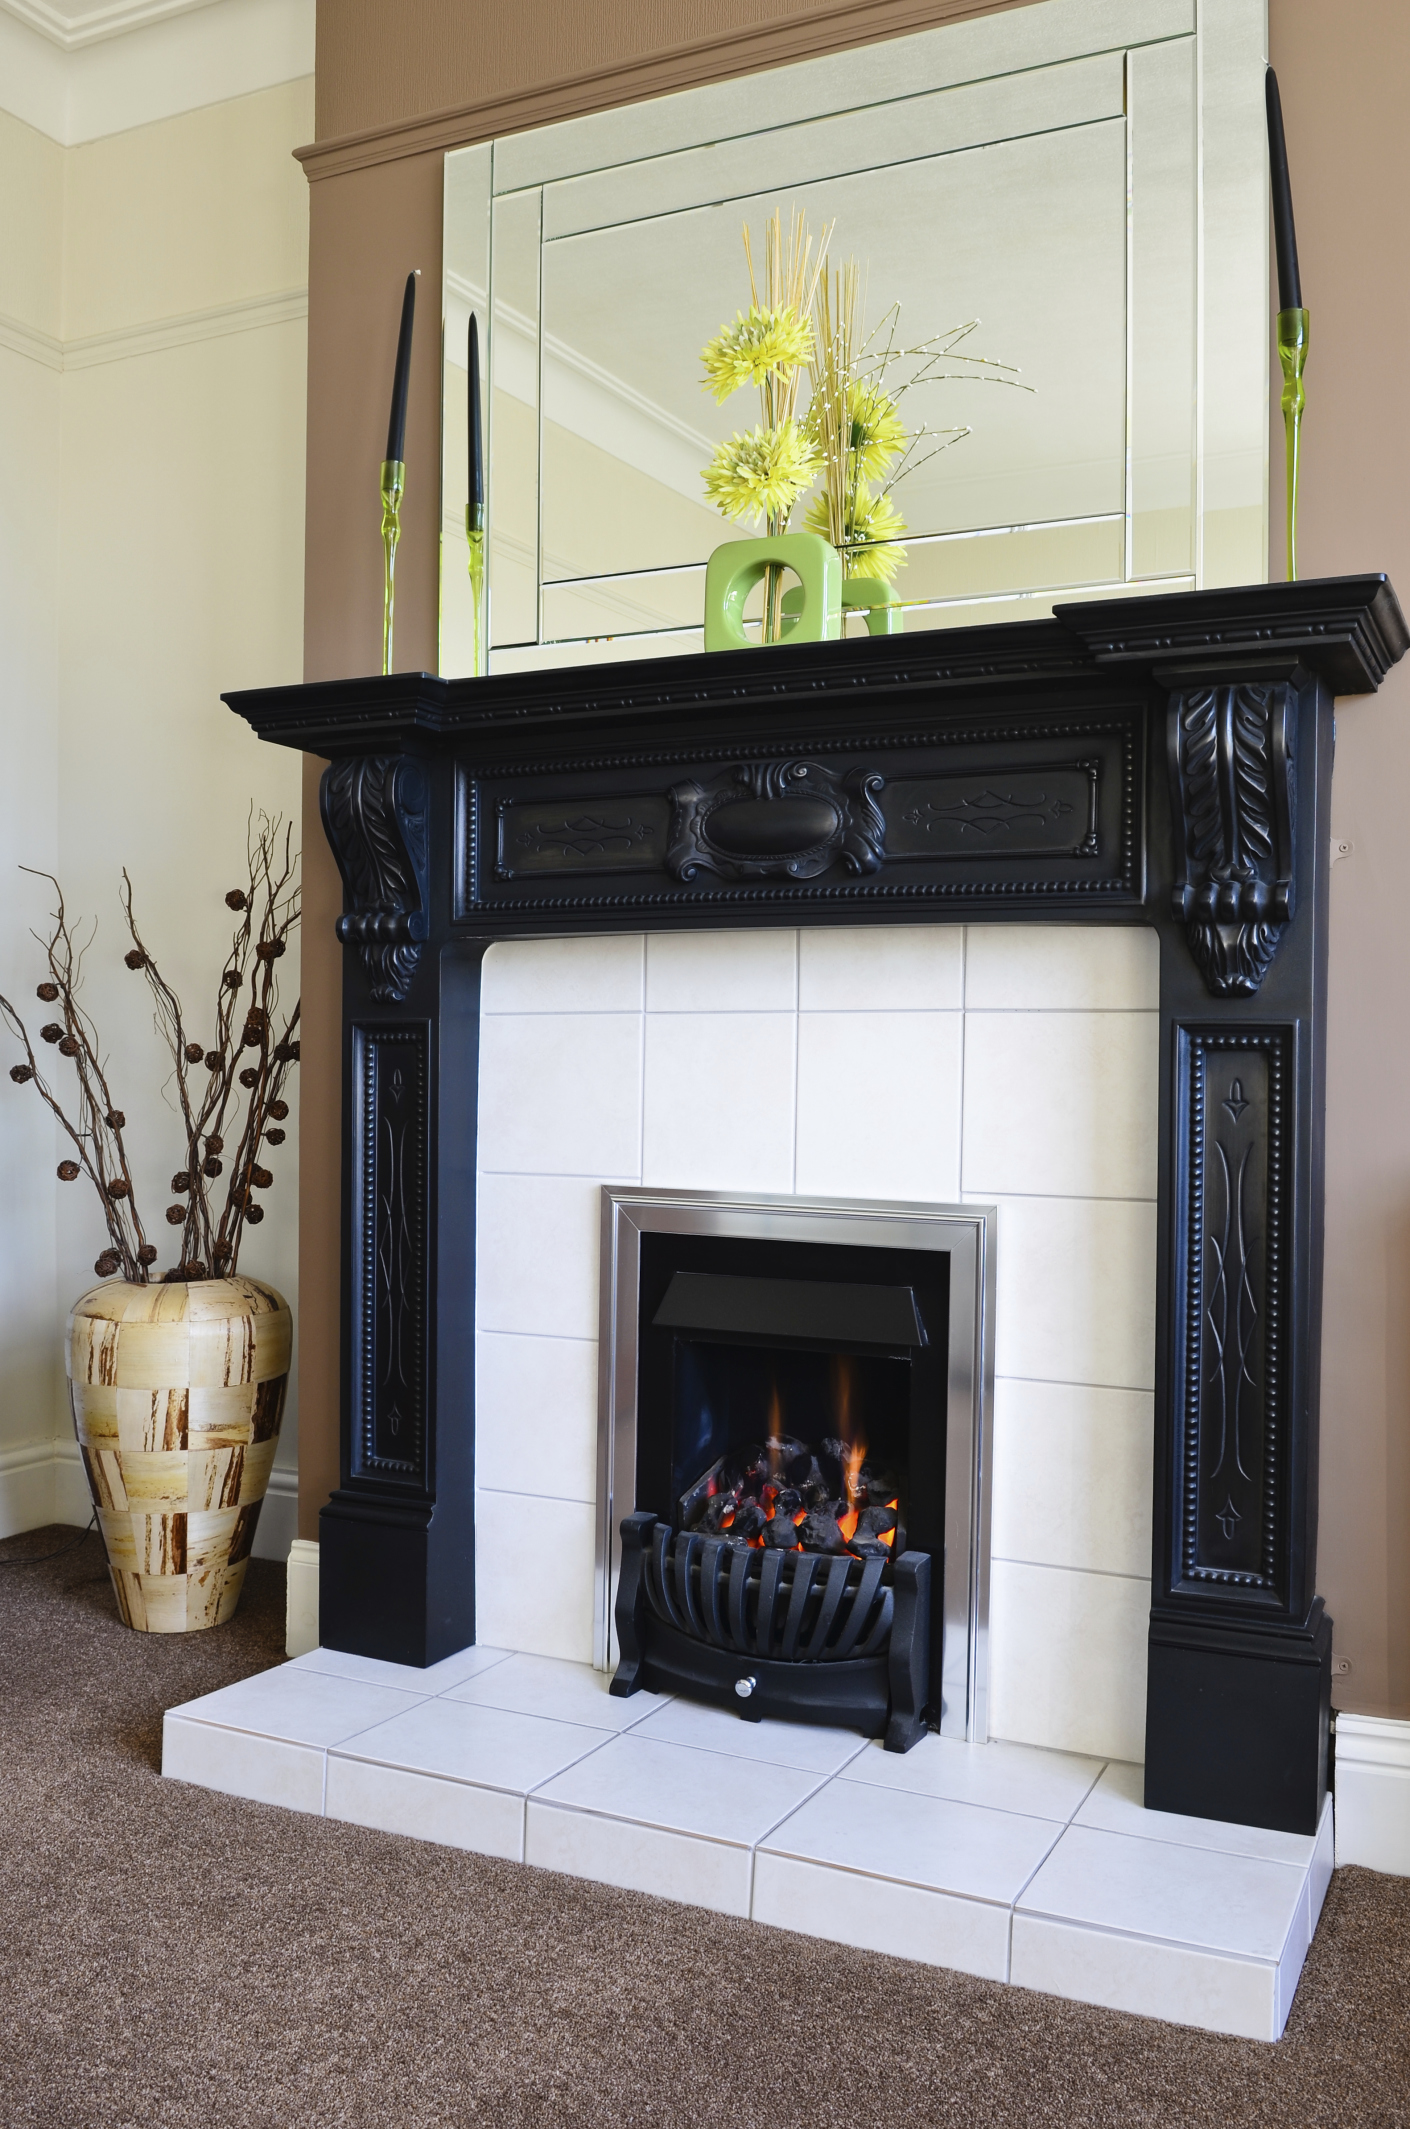 Fireplaces To Warm Your Inspiration Photo Gallery - Brick fireplace tile ideas